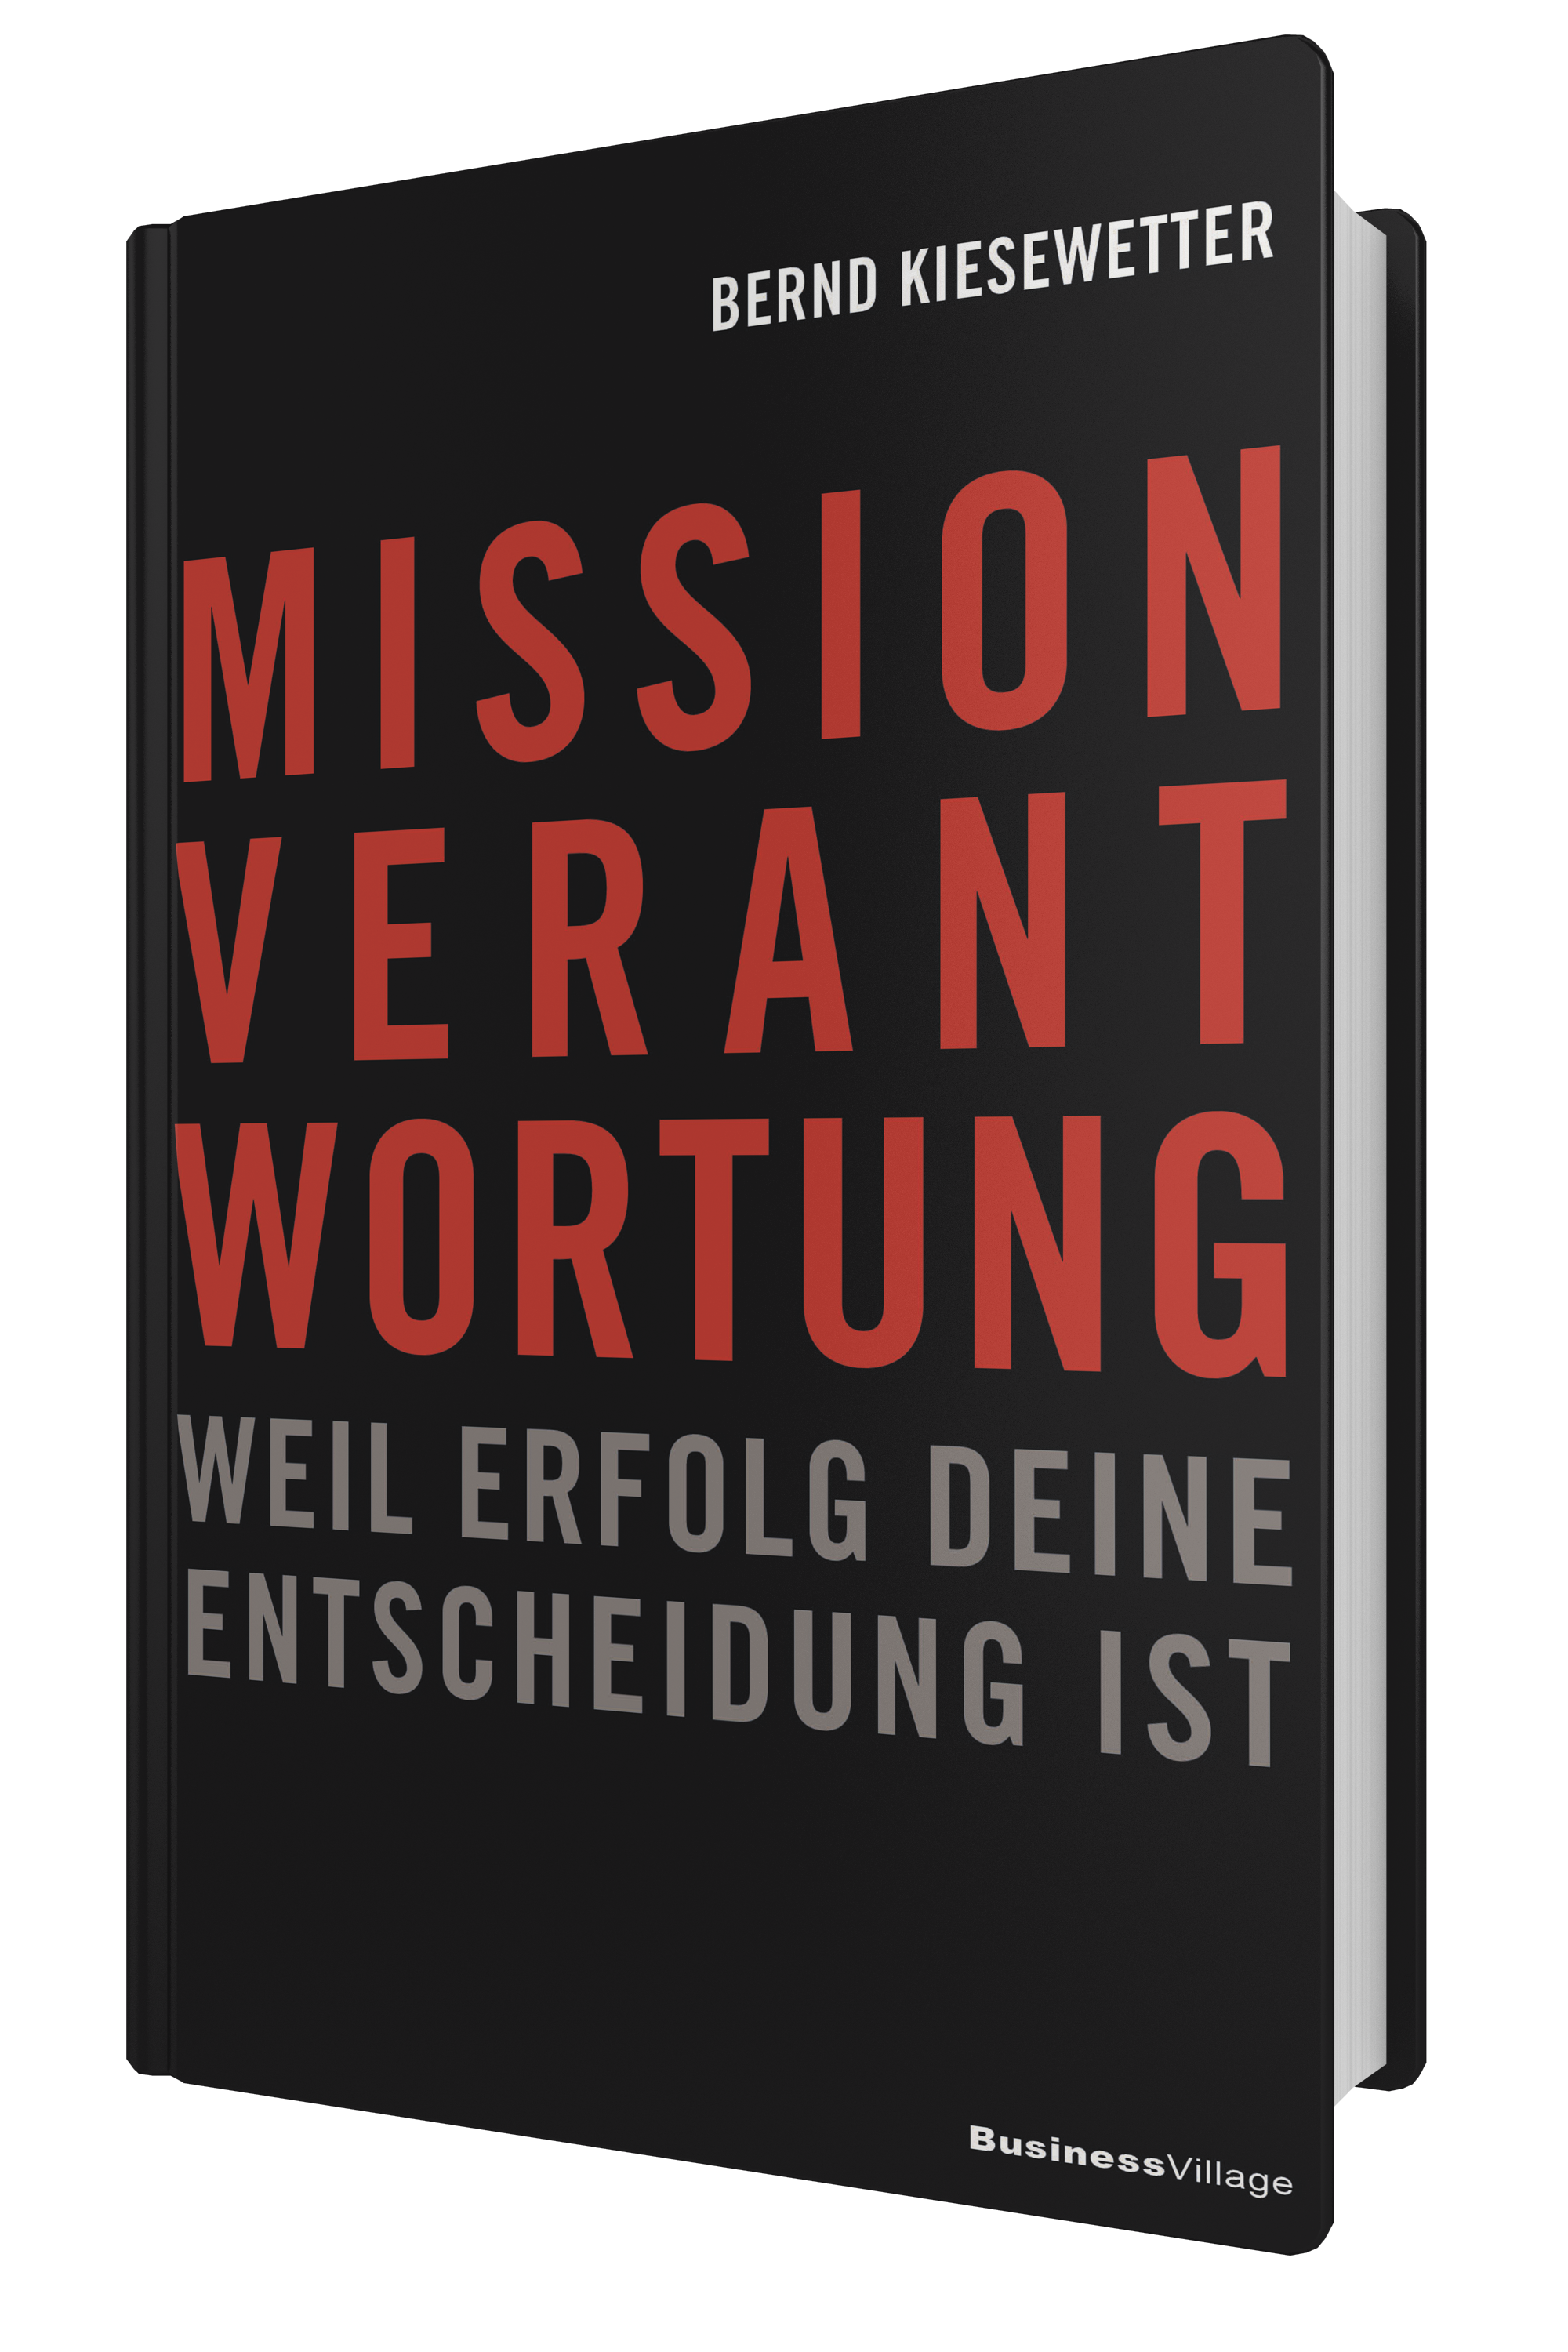 Mission Verantwortung